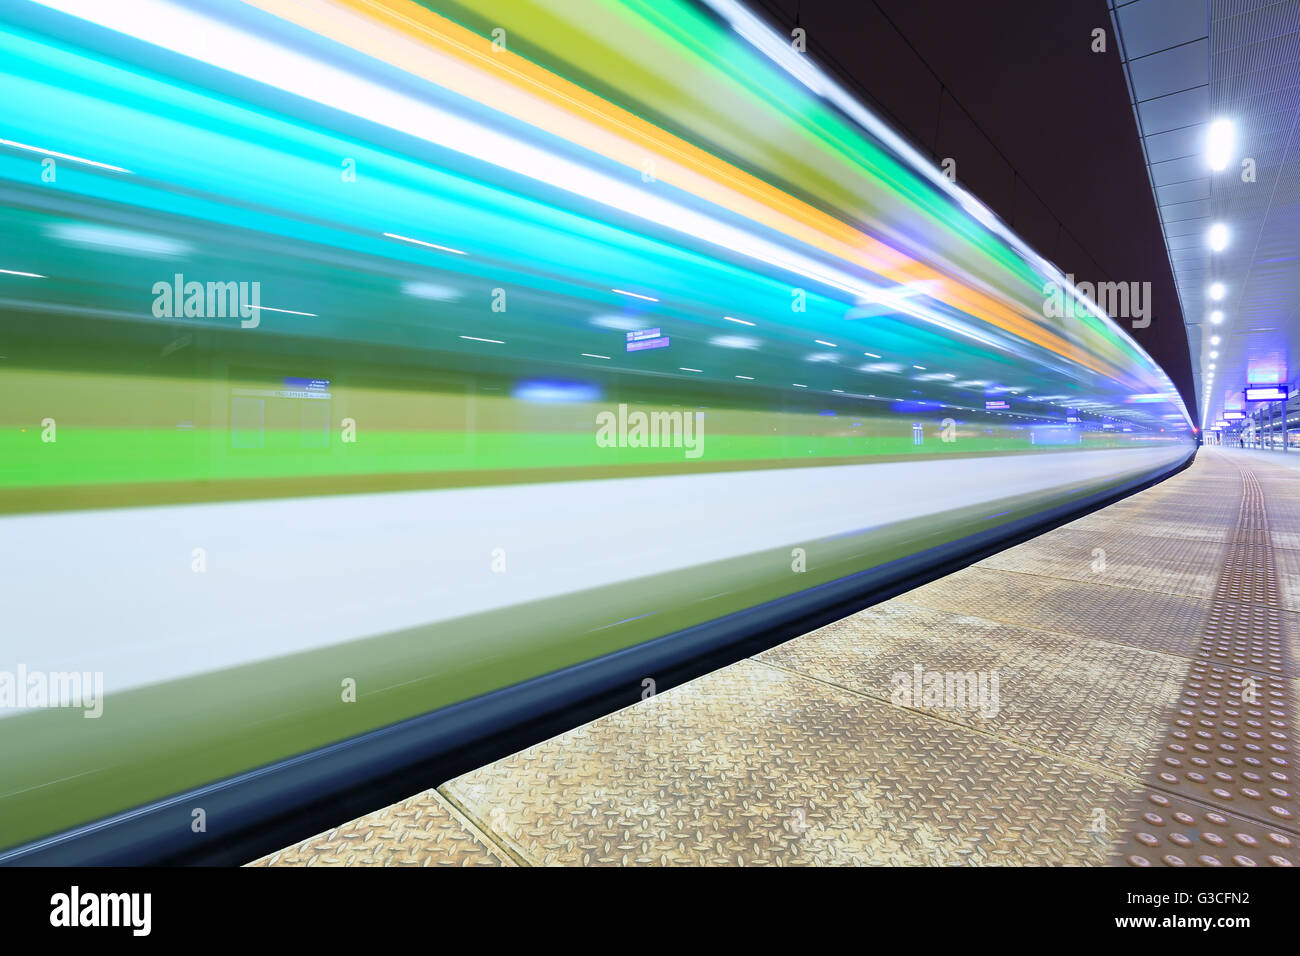 Train in motion at the station - Stock Image